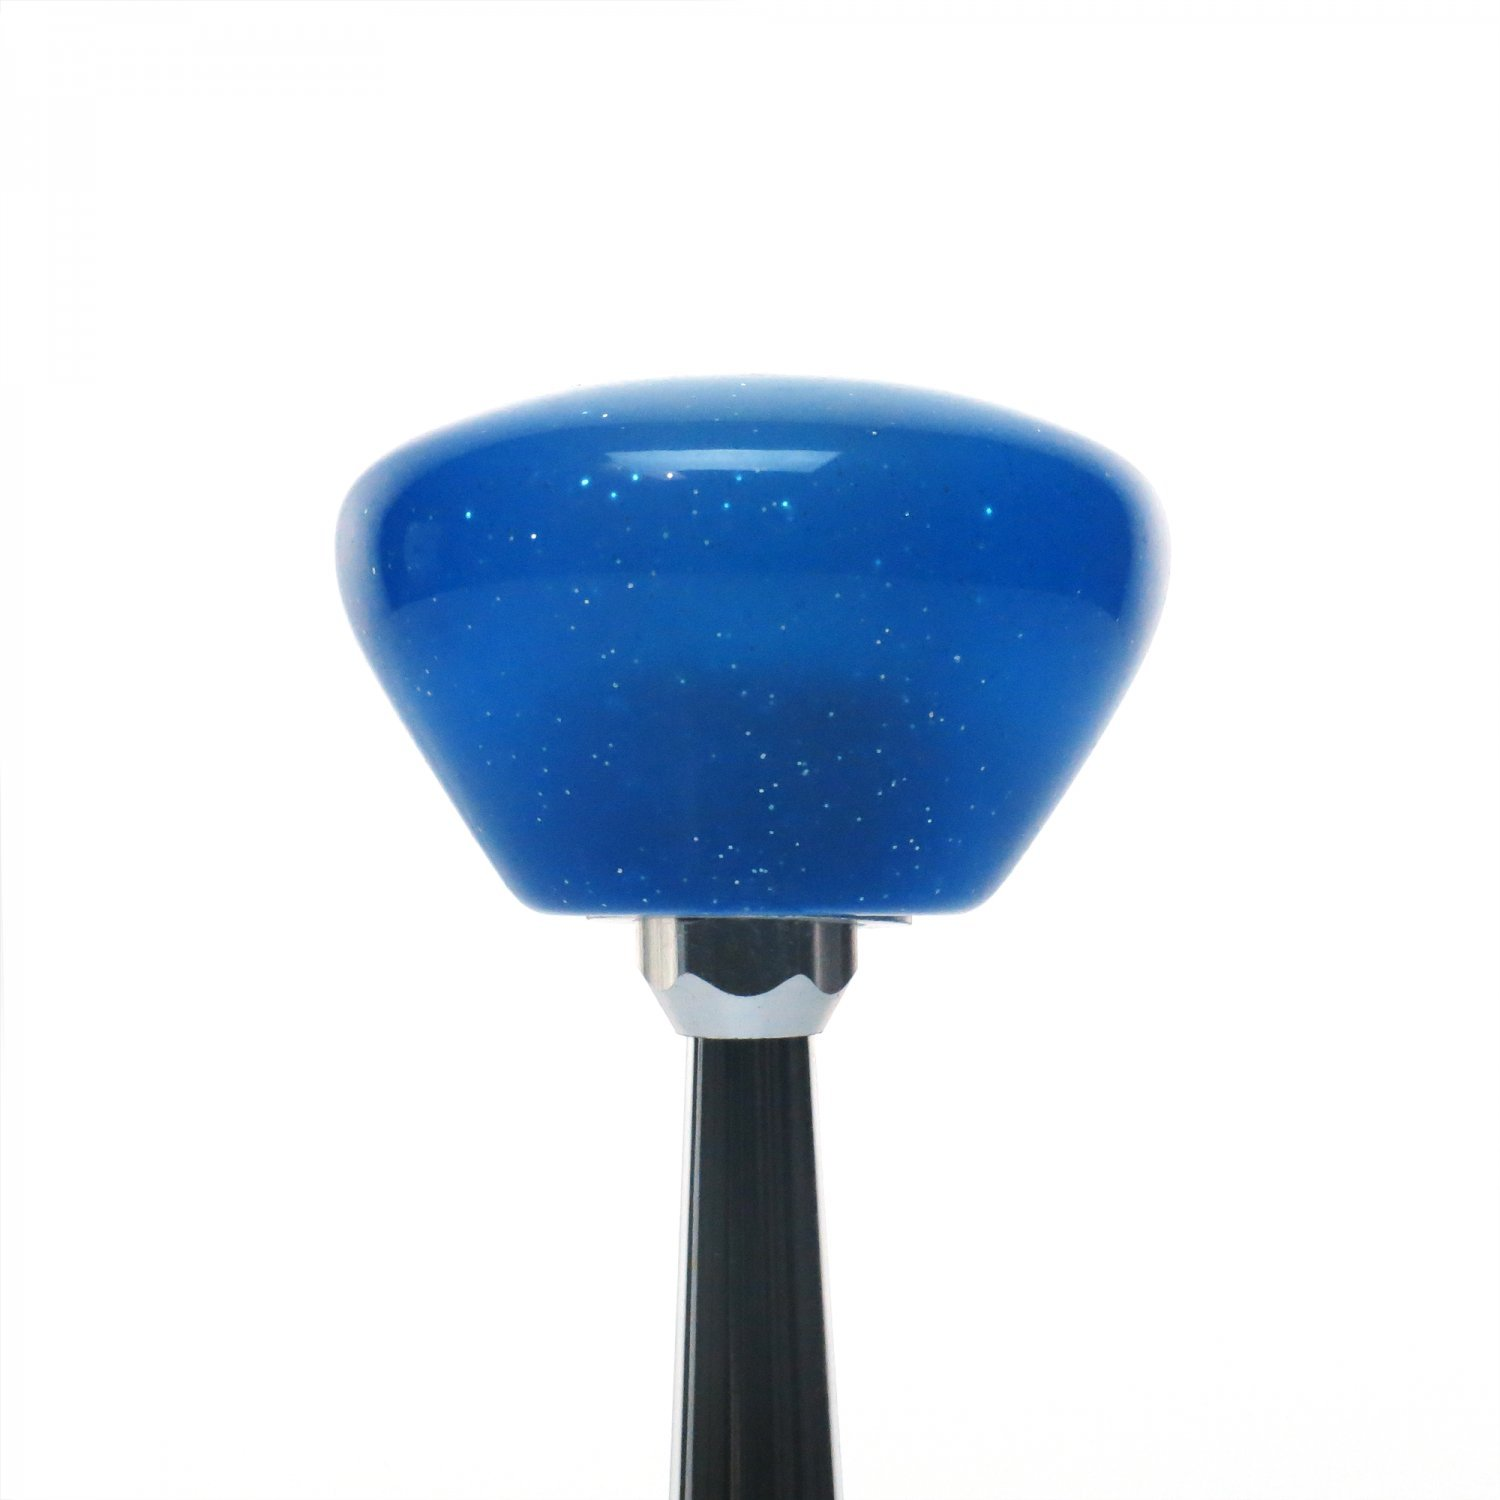 White Shift Pattern 62n American Shifter 192121 Blue Retro Metal Flake Shift Knob with M16 x 1.5 Insert